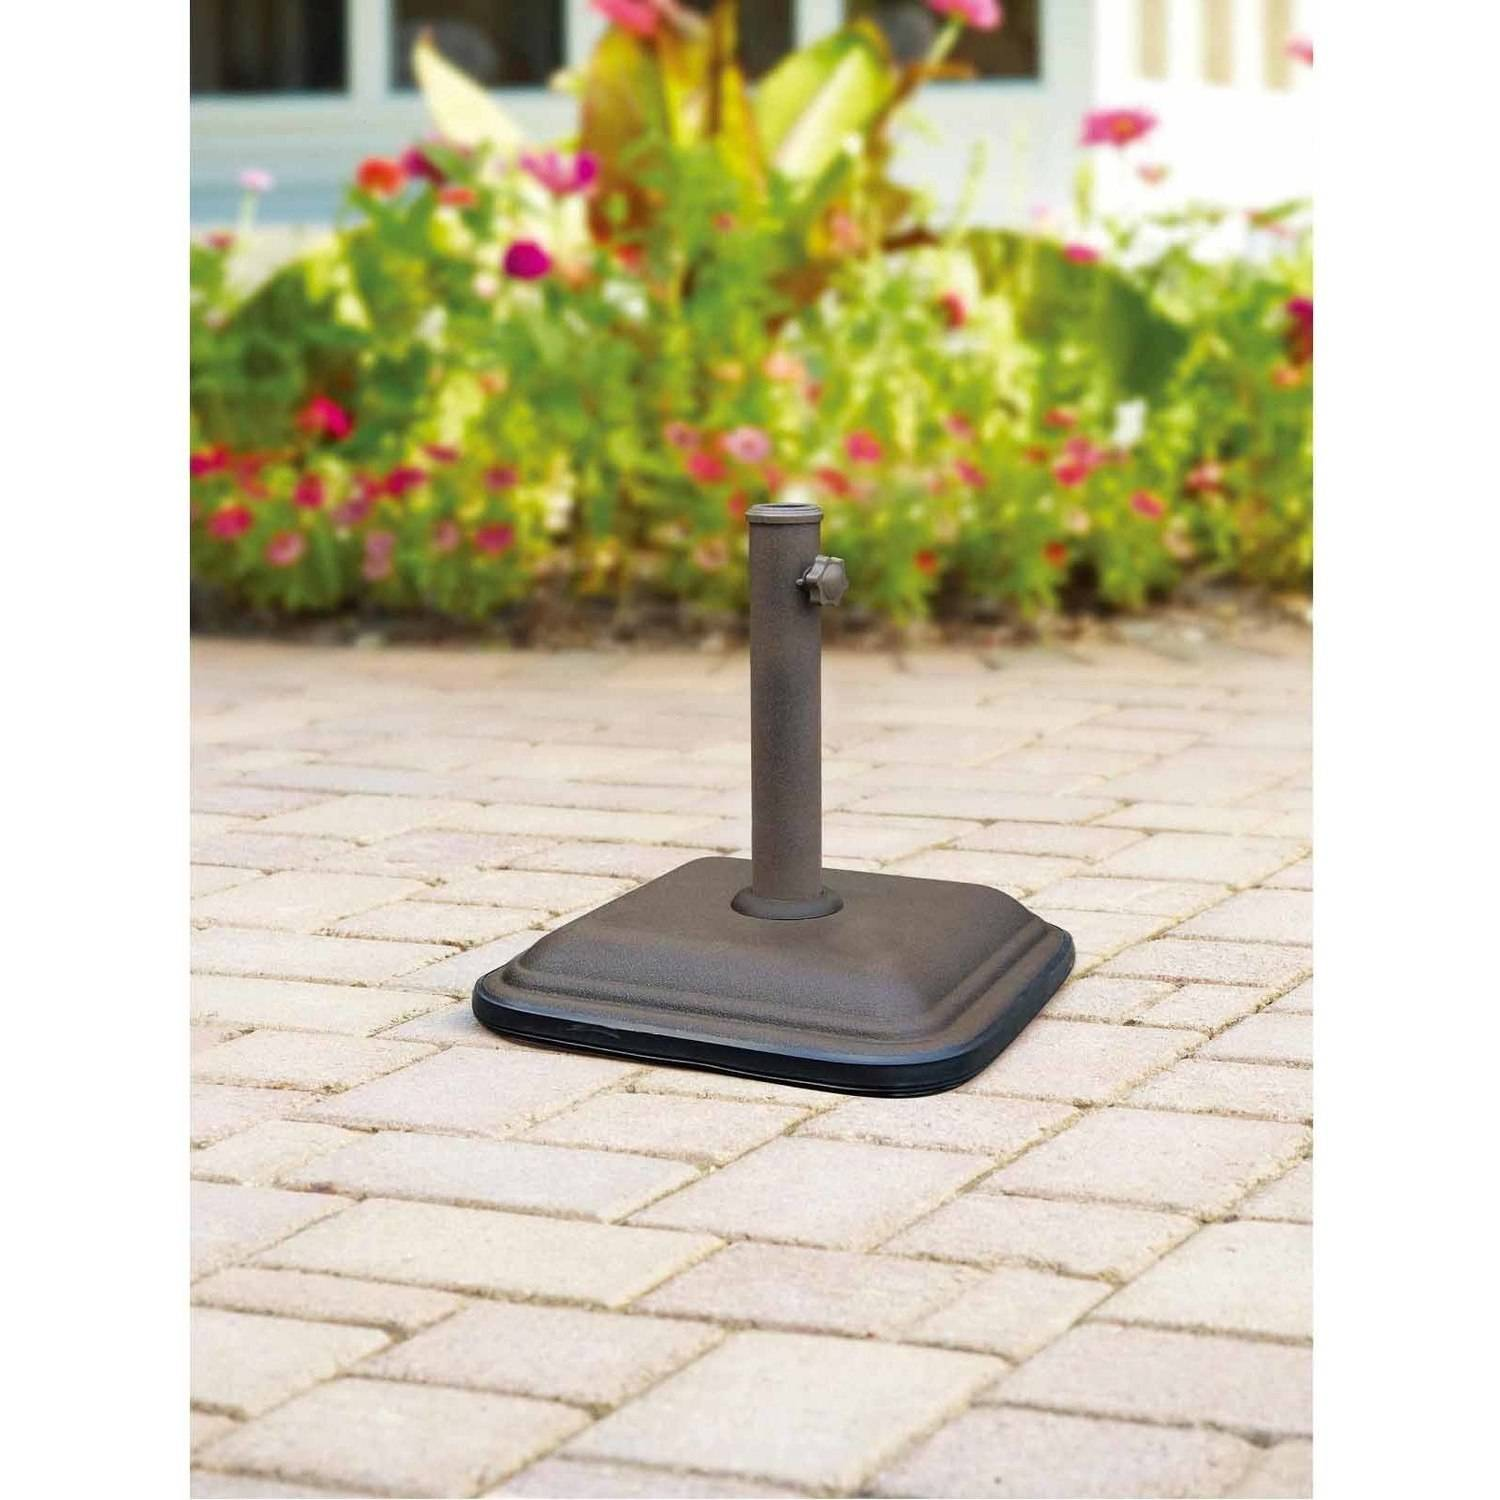 Mainstays Lawson Ridge Umbrella Base - Patio Umbrellas & Bases - Walmart.com